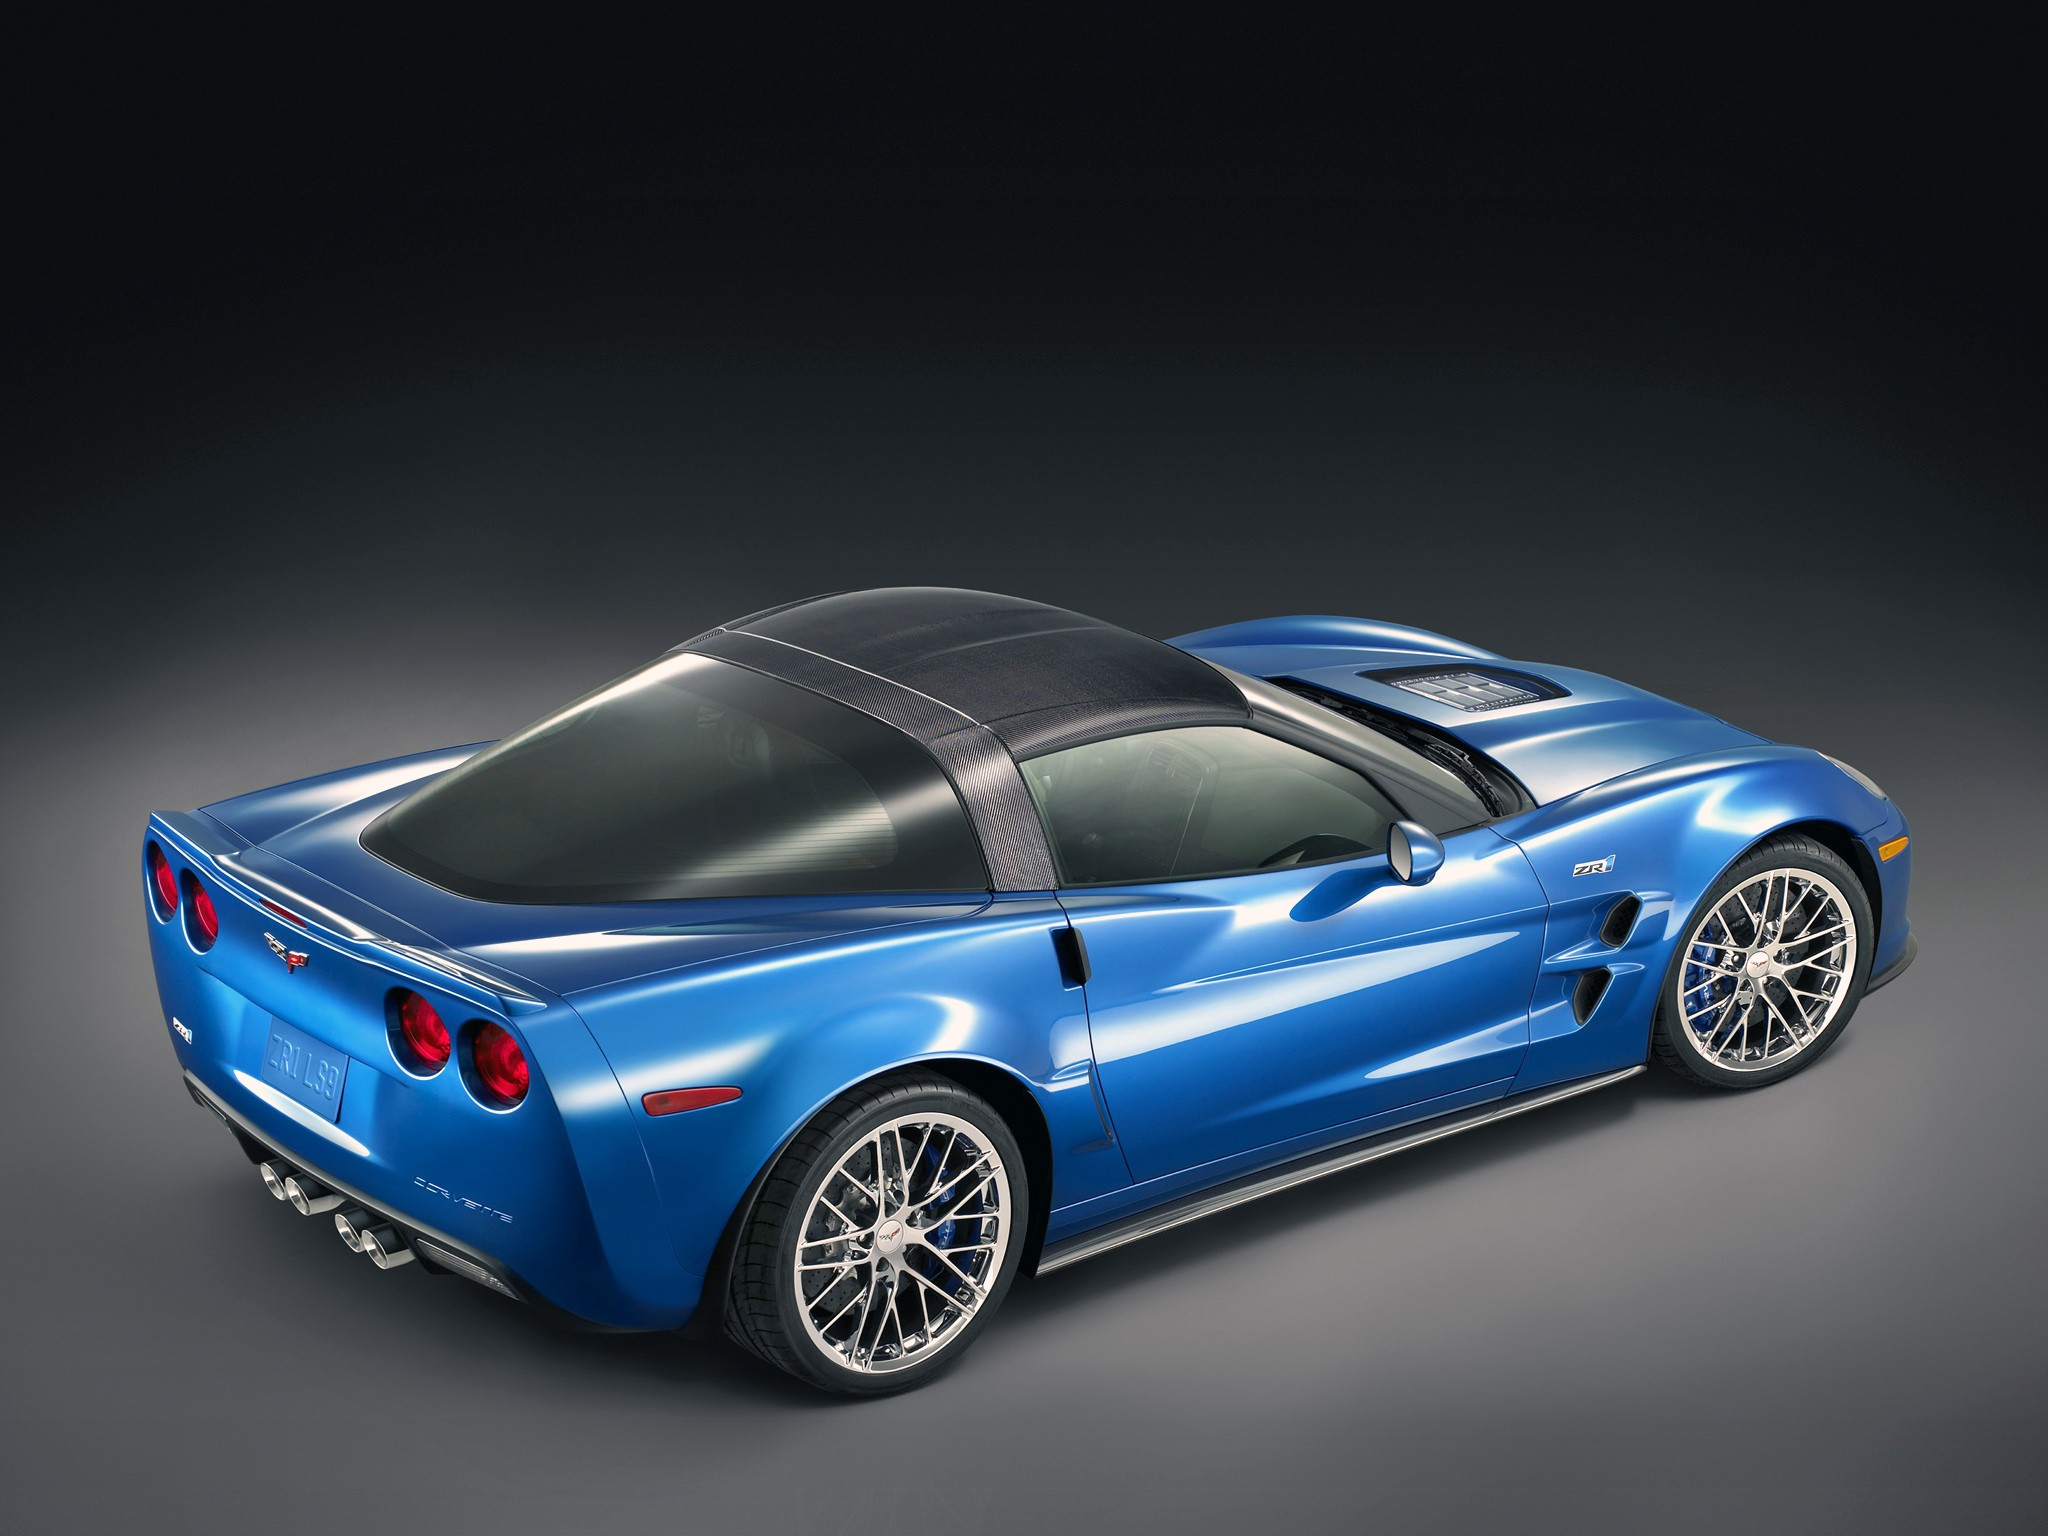 2012 Corvette For Sale >> CHEVROLET Corvette ZR1 specs & photos - 2008, 2009, 2010 ...